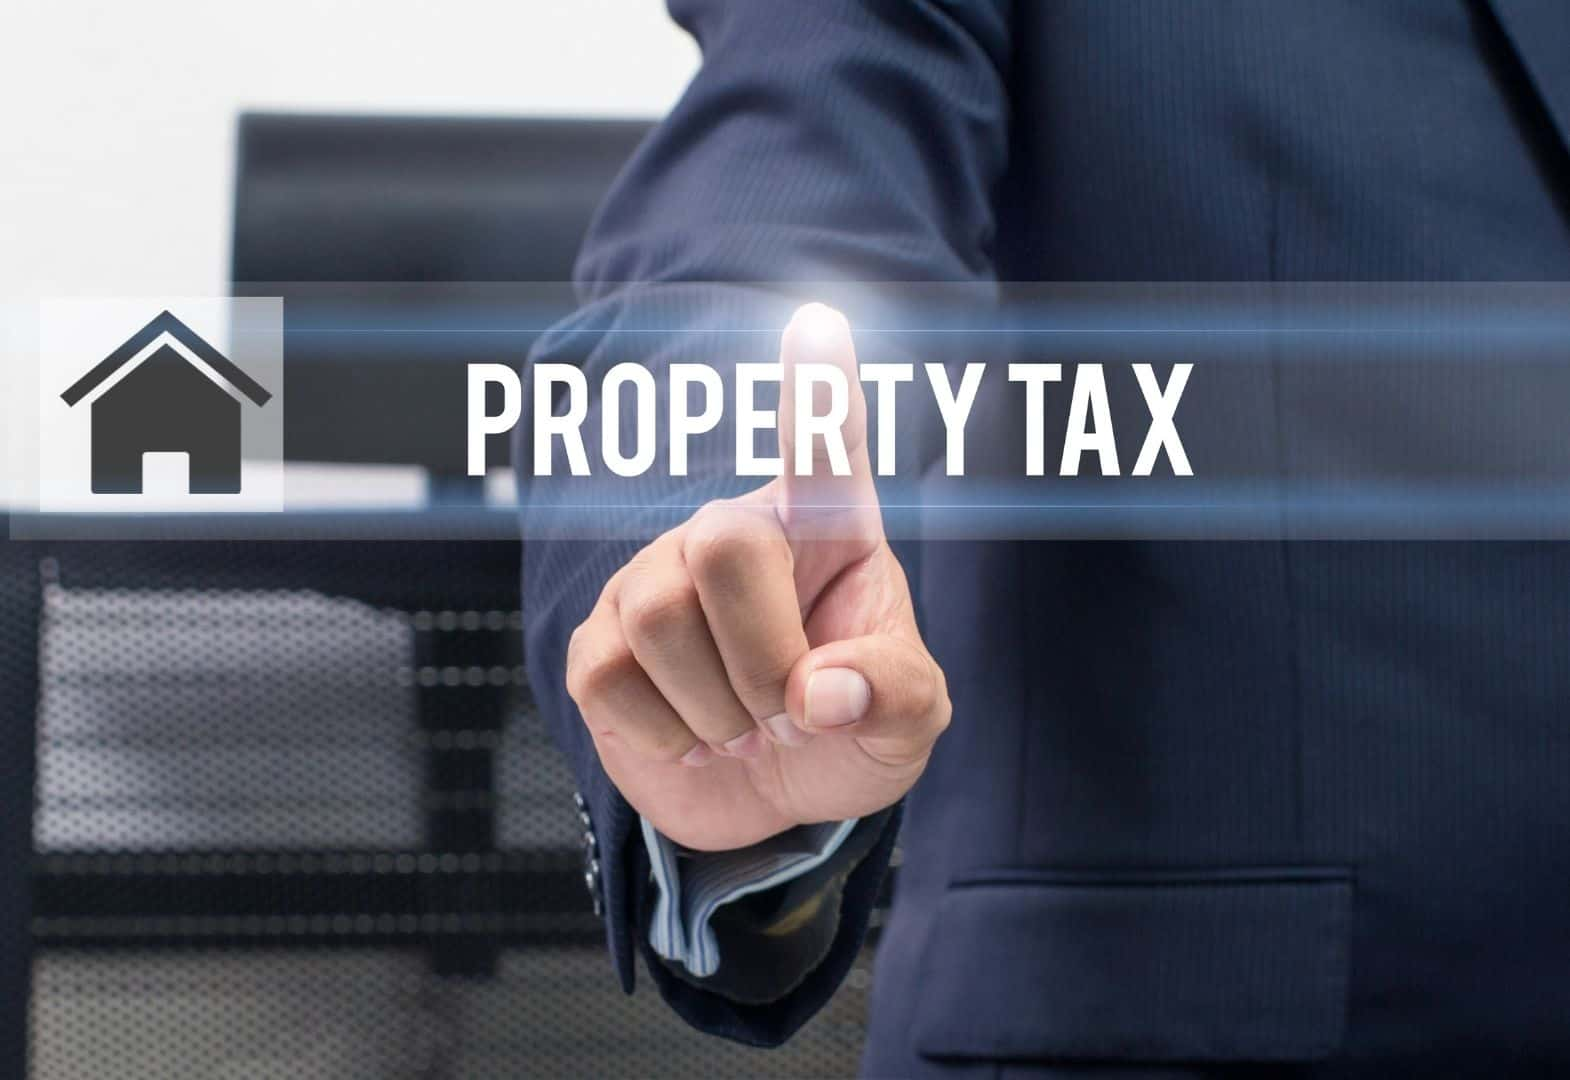 Property Tax in Thailand